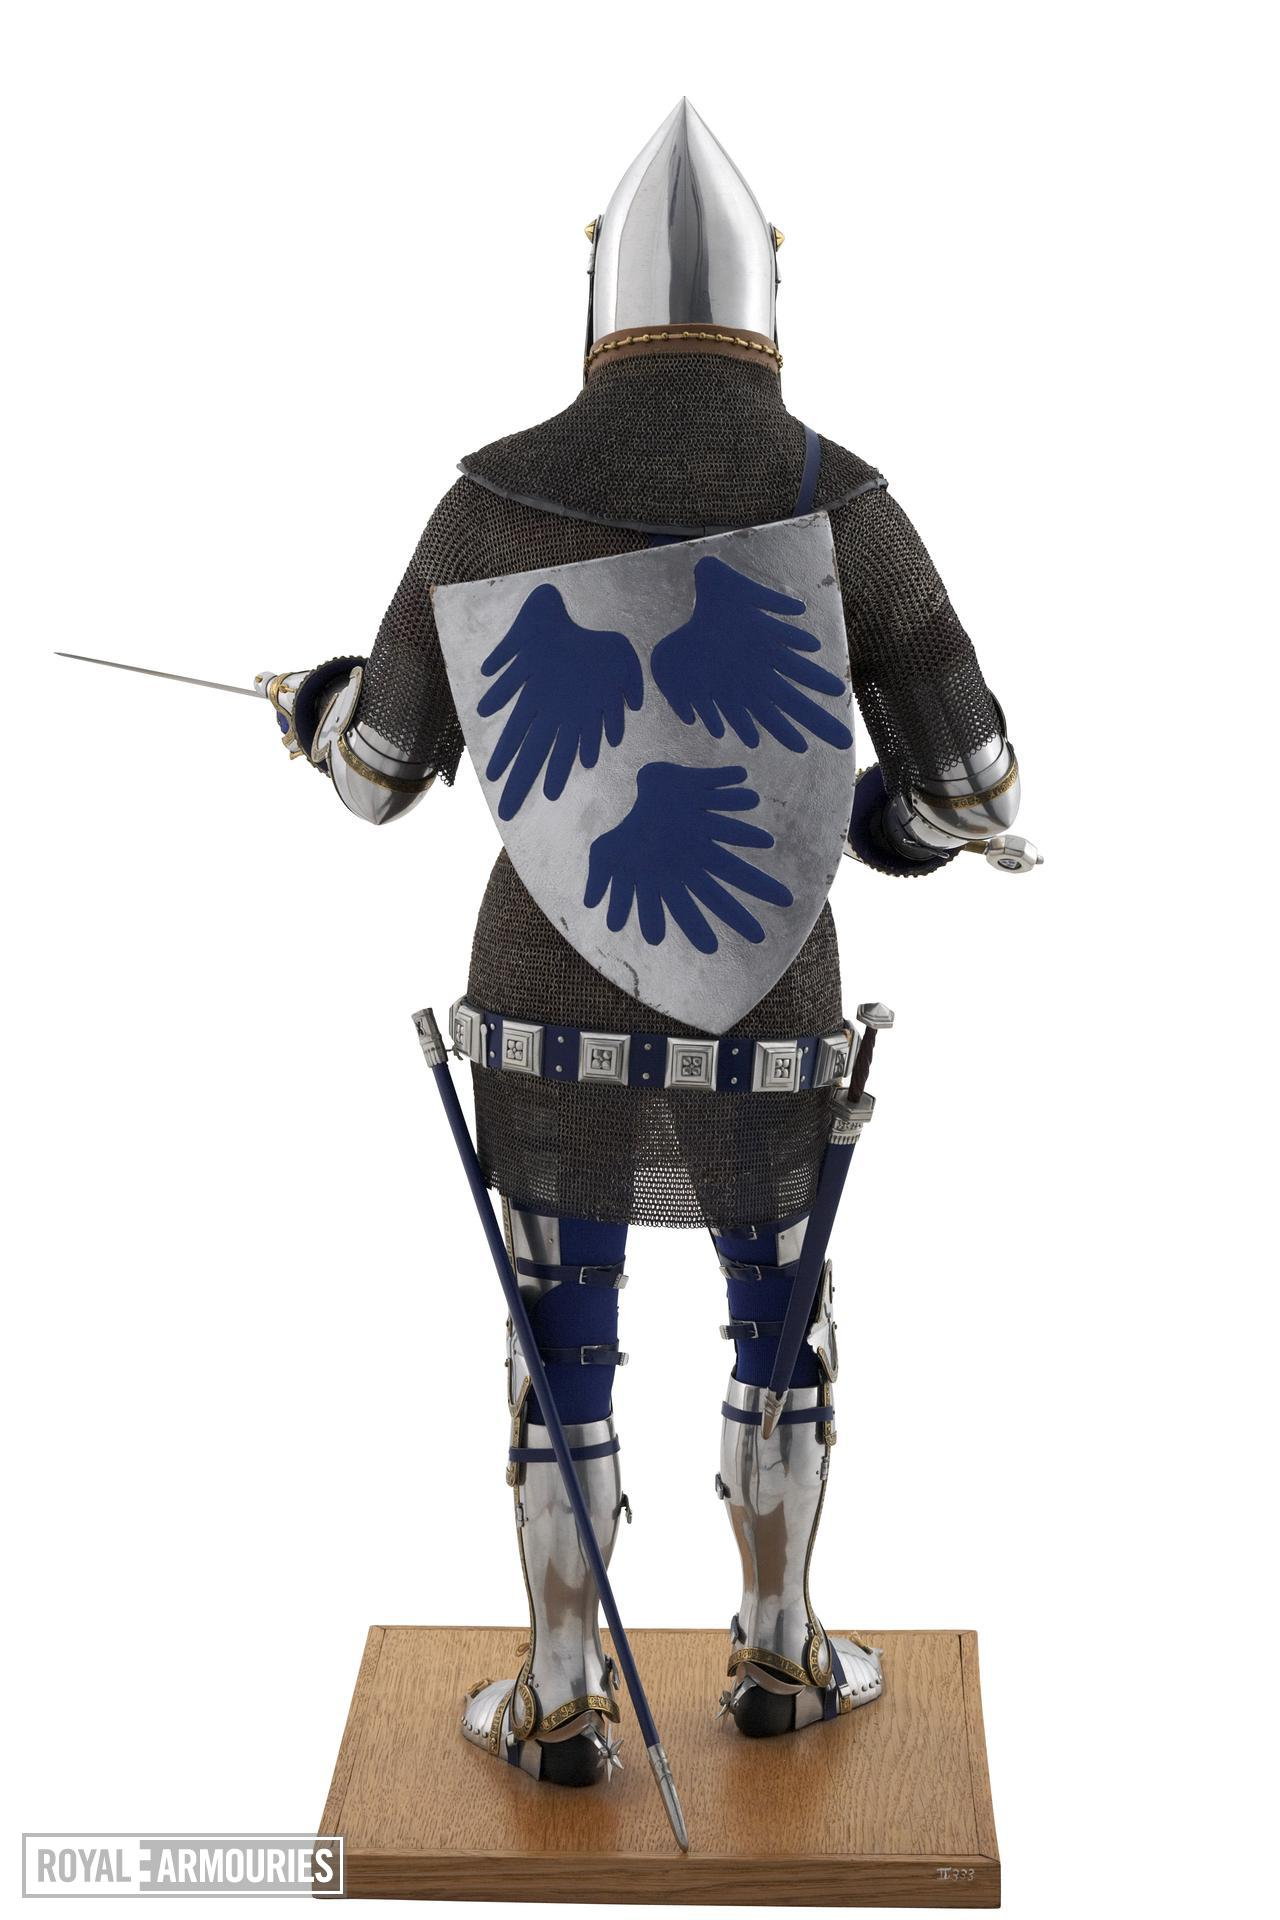 Rear of model of a man at arms in Italian armour of the late 14th century. British, 1975 (II.333)